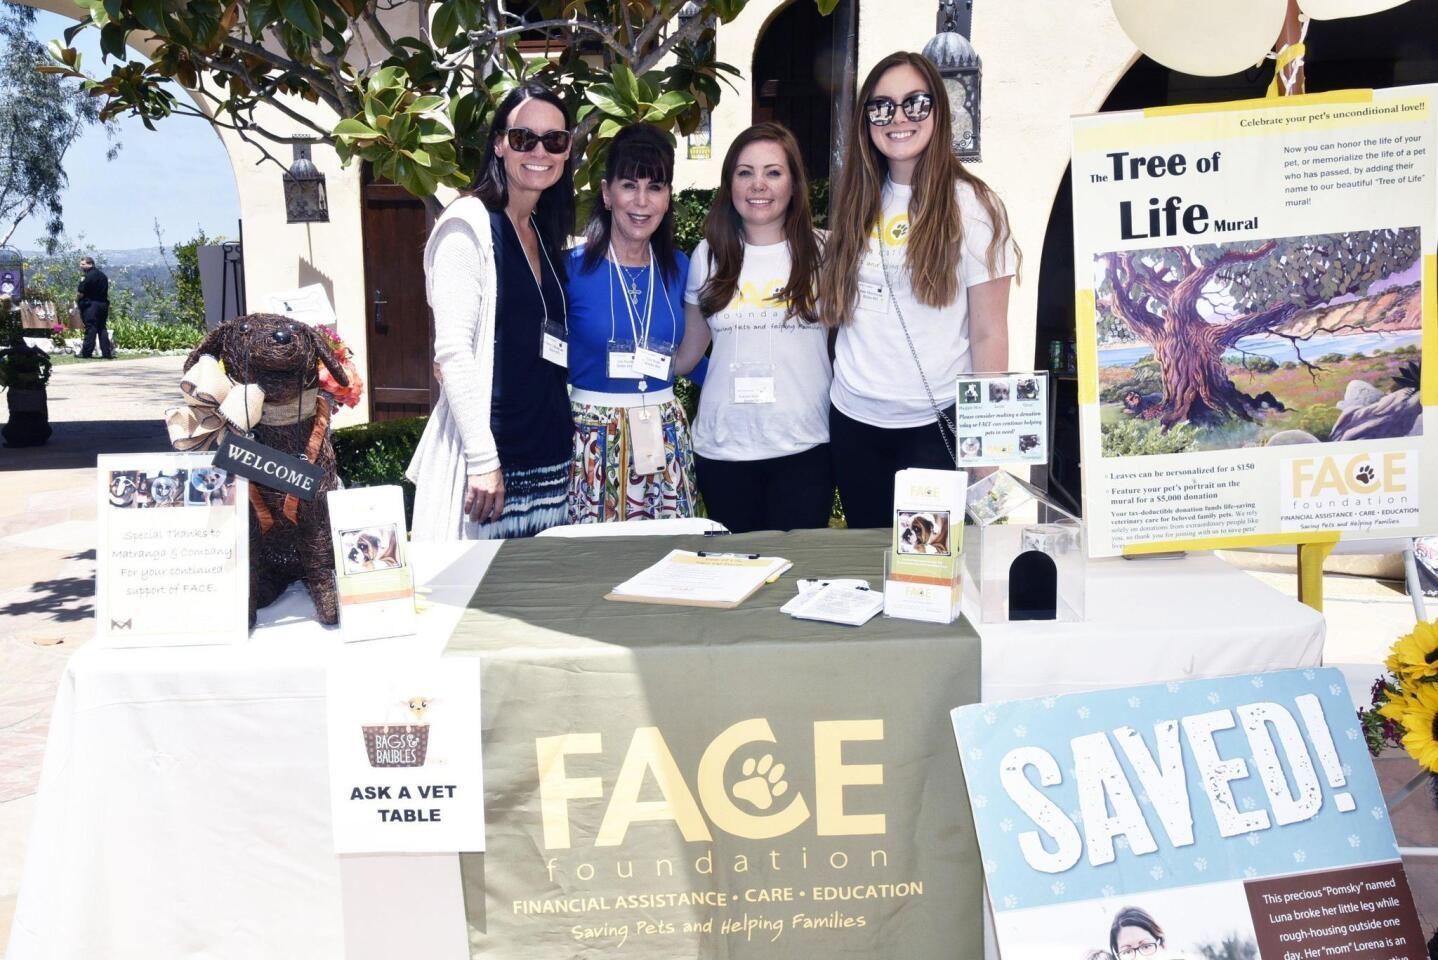 FACE Foundation's 8th Annual Bags & Baubles